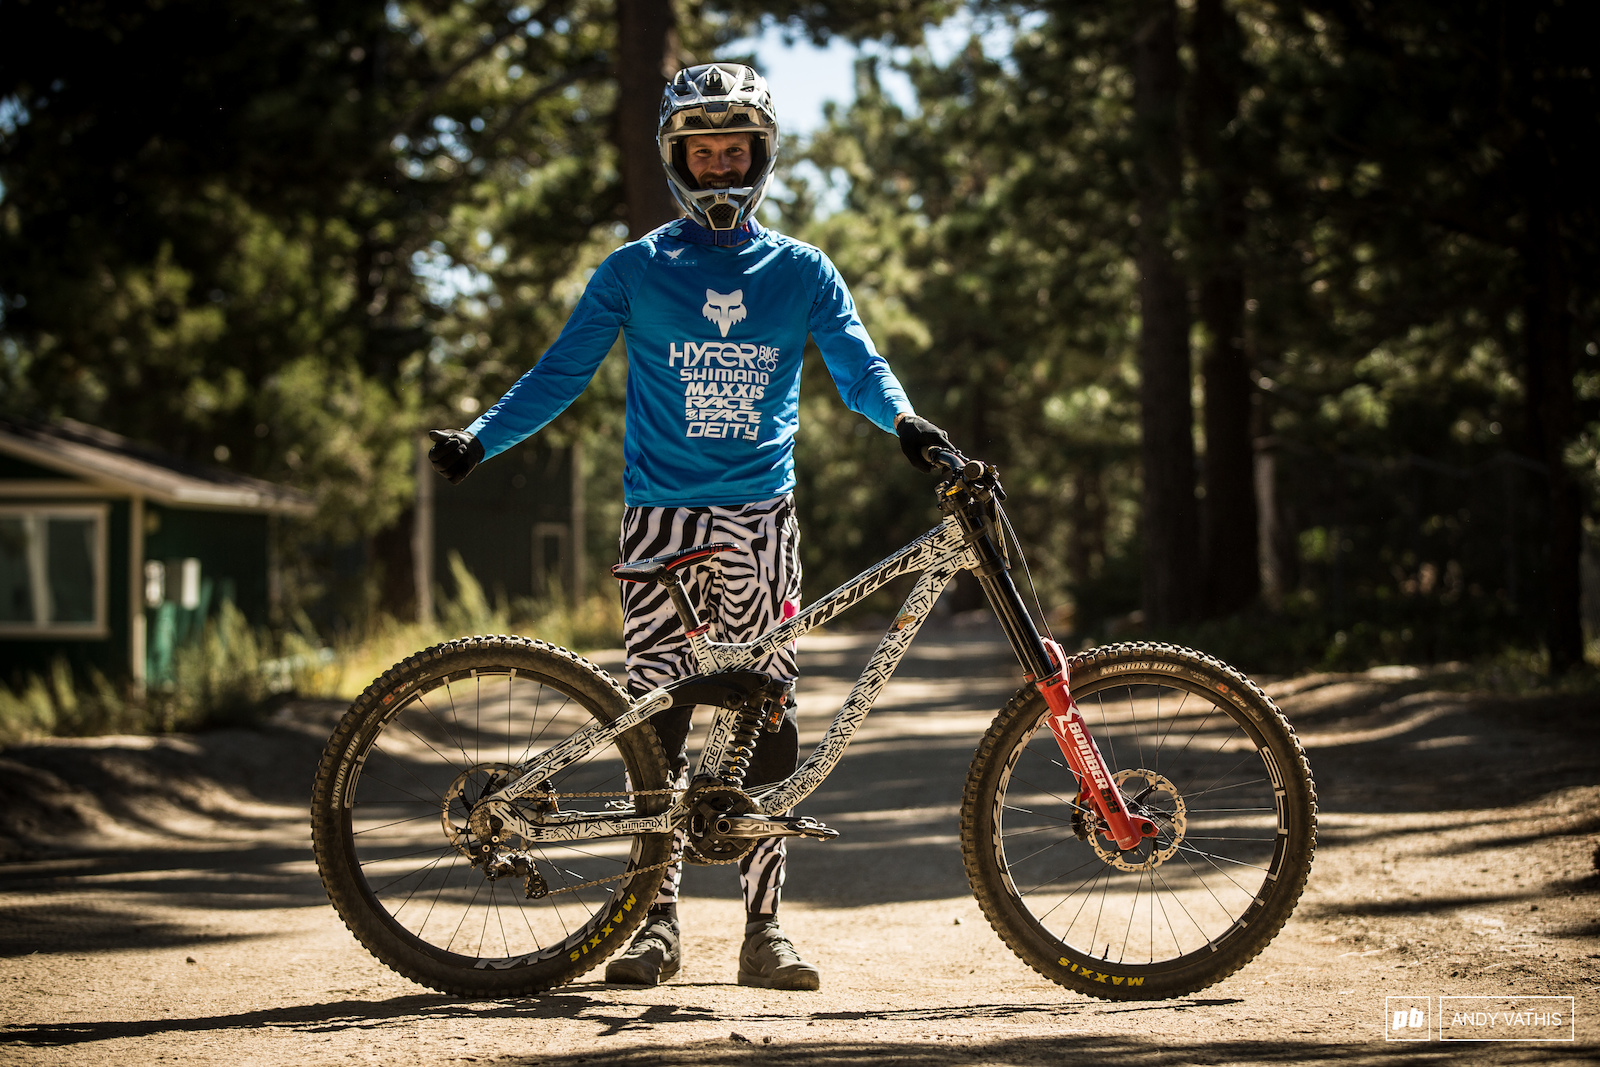 Best pants for the weekend goes to Bas van Steenbergen and his Hyper painted to match.